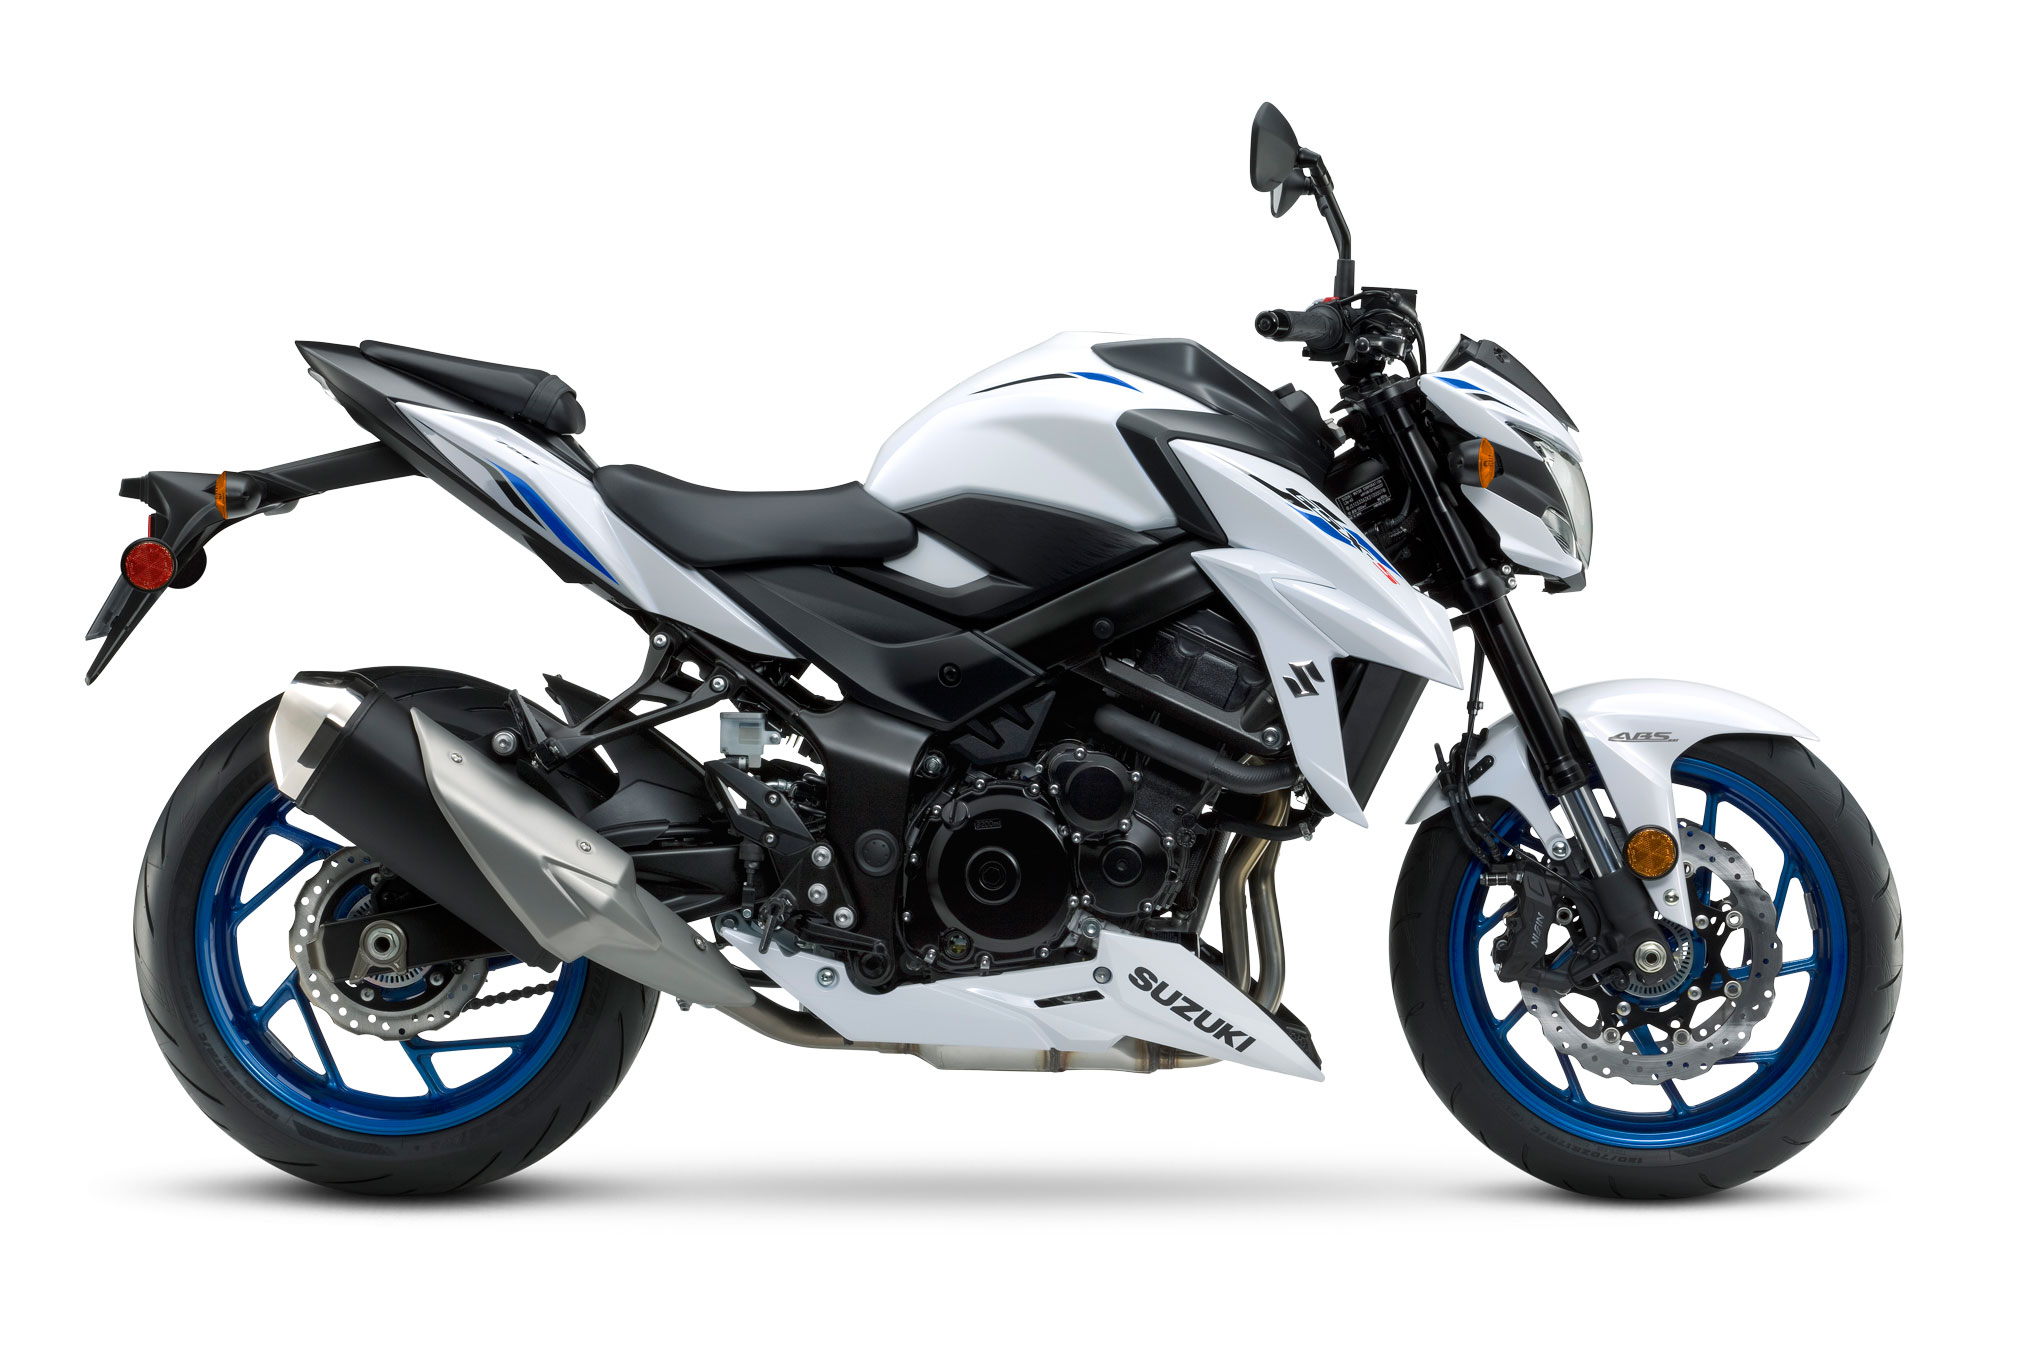 2019 suzuki gsx s750 abs guide total motorcycle. Black Bedroom Furniture Sets. Home Design Ideas